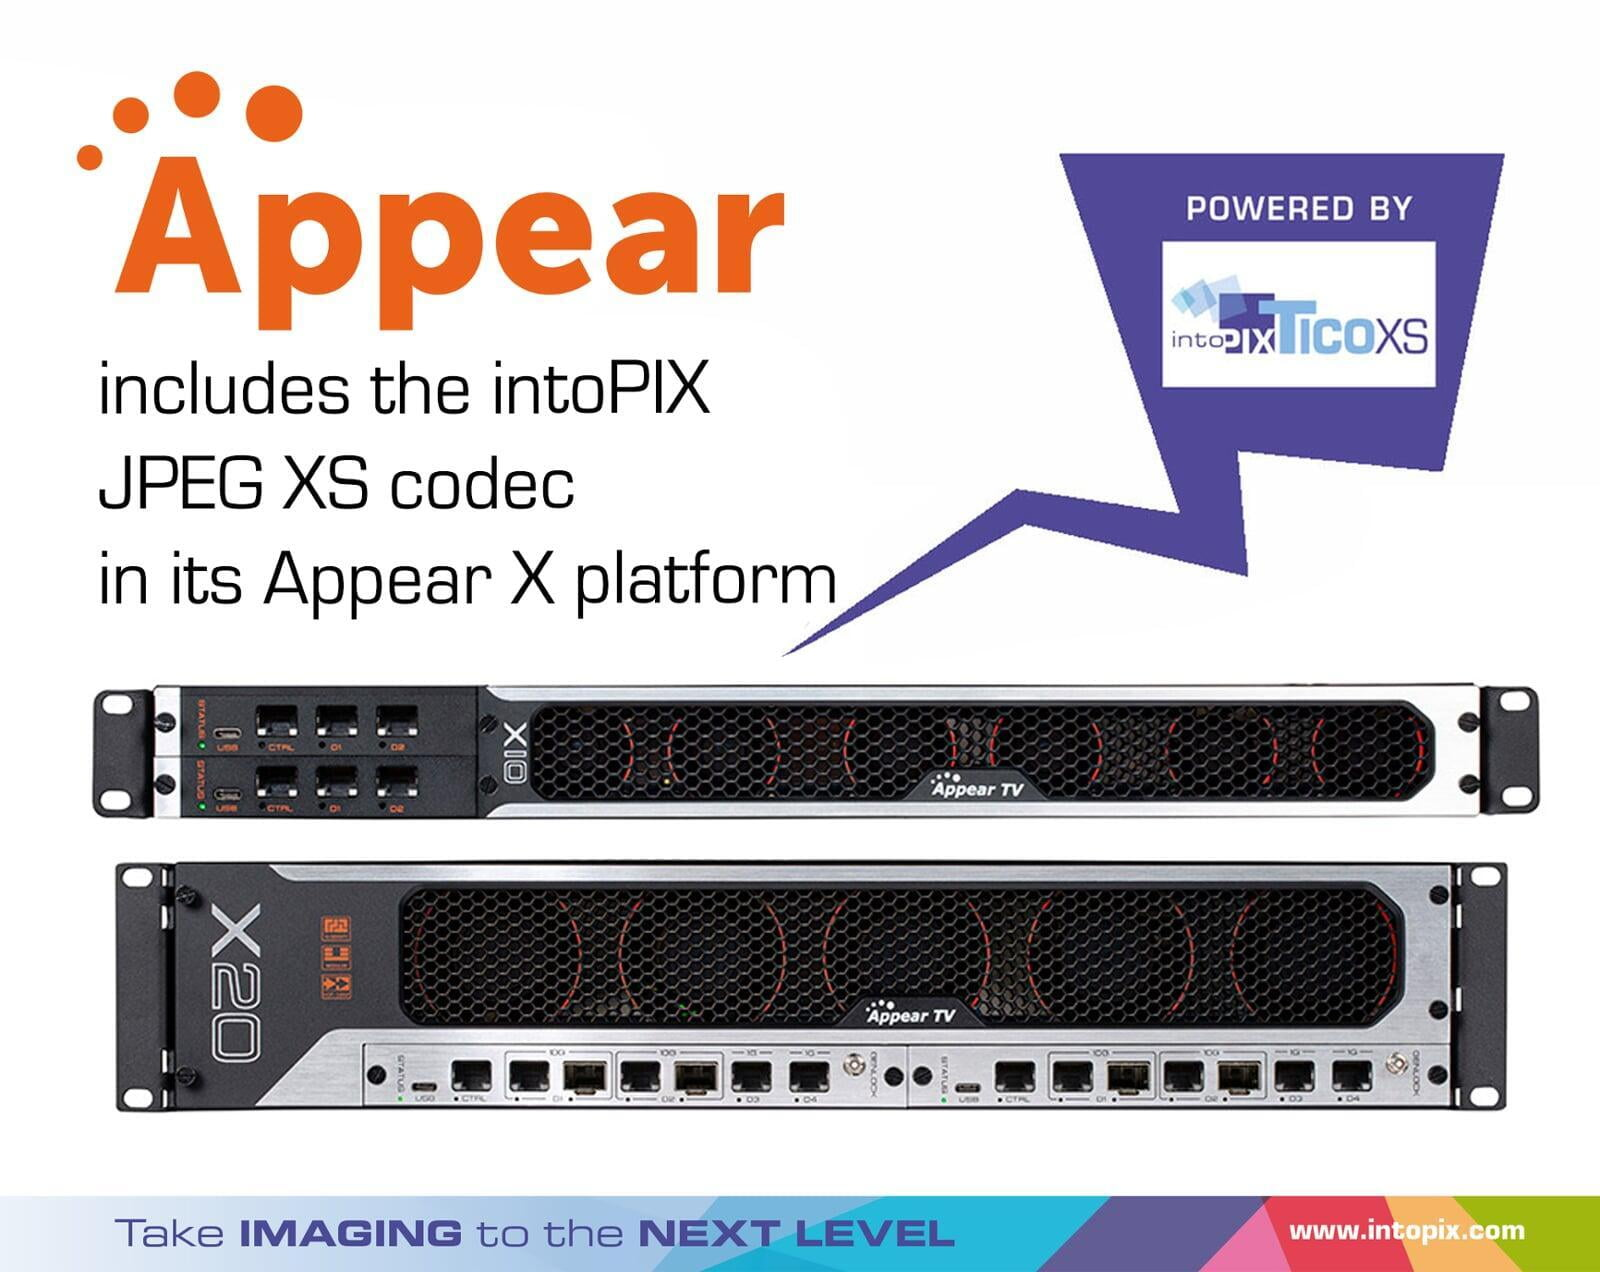 Appear TV introduces Zero-latency intoPIX JPEG XS technology in the X Platform